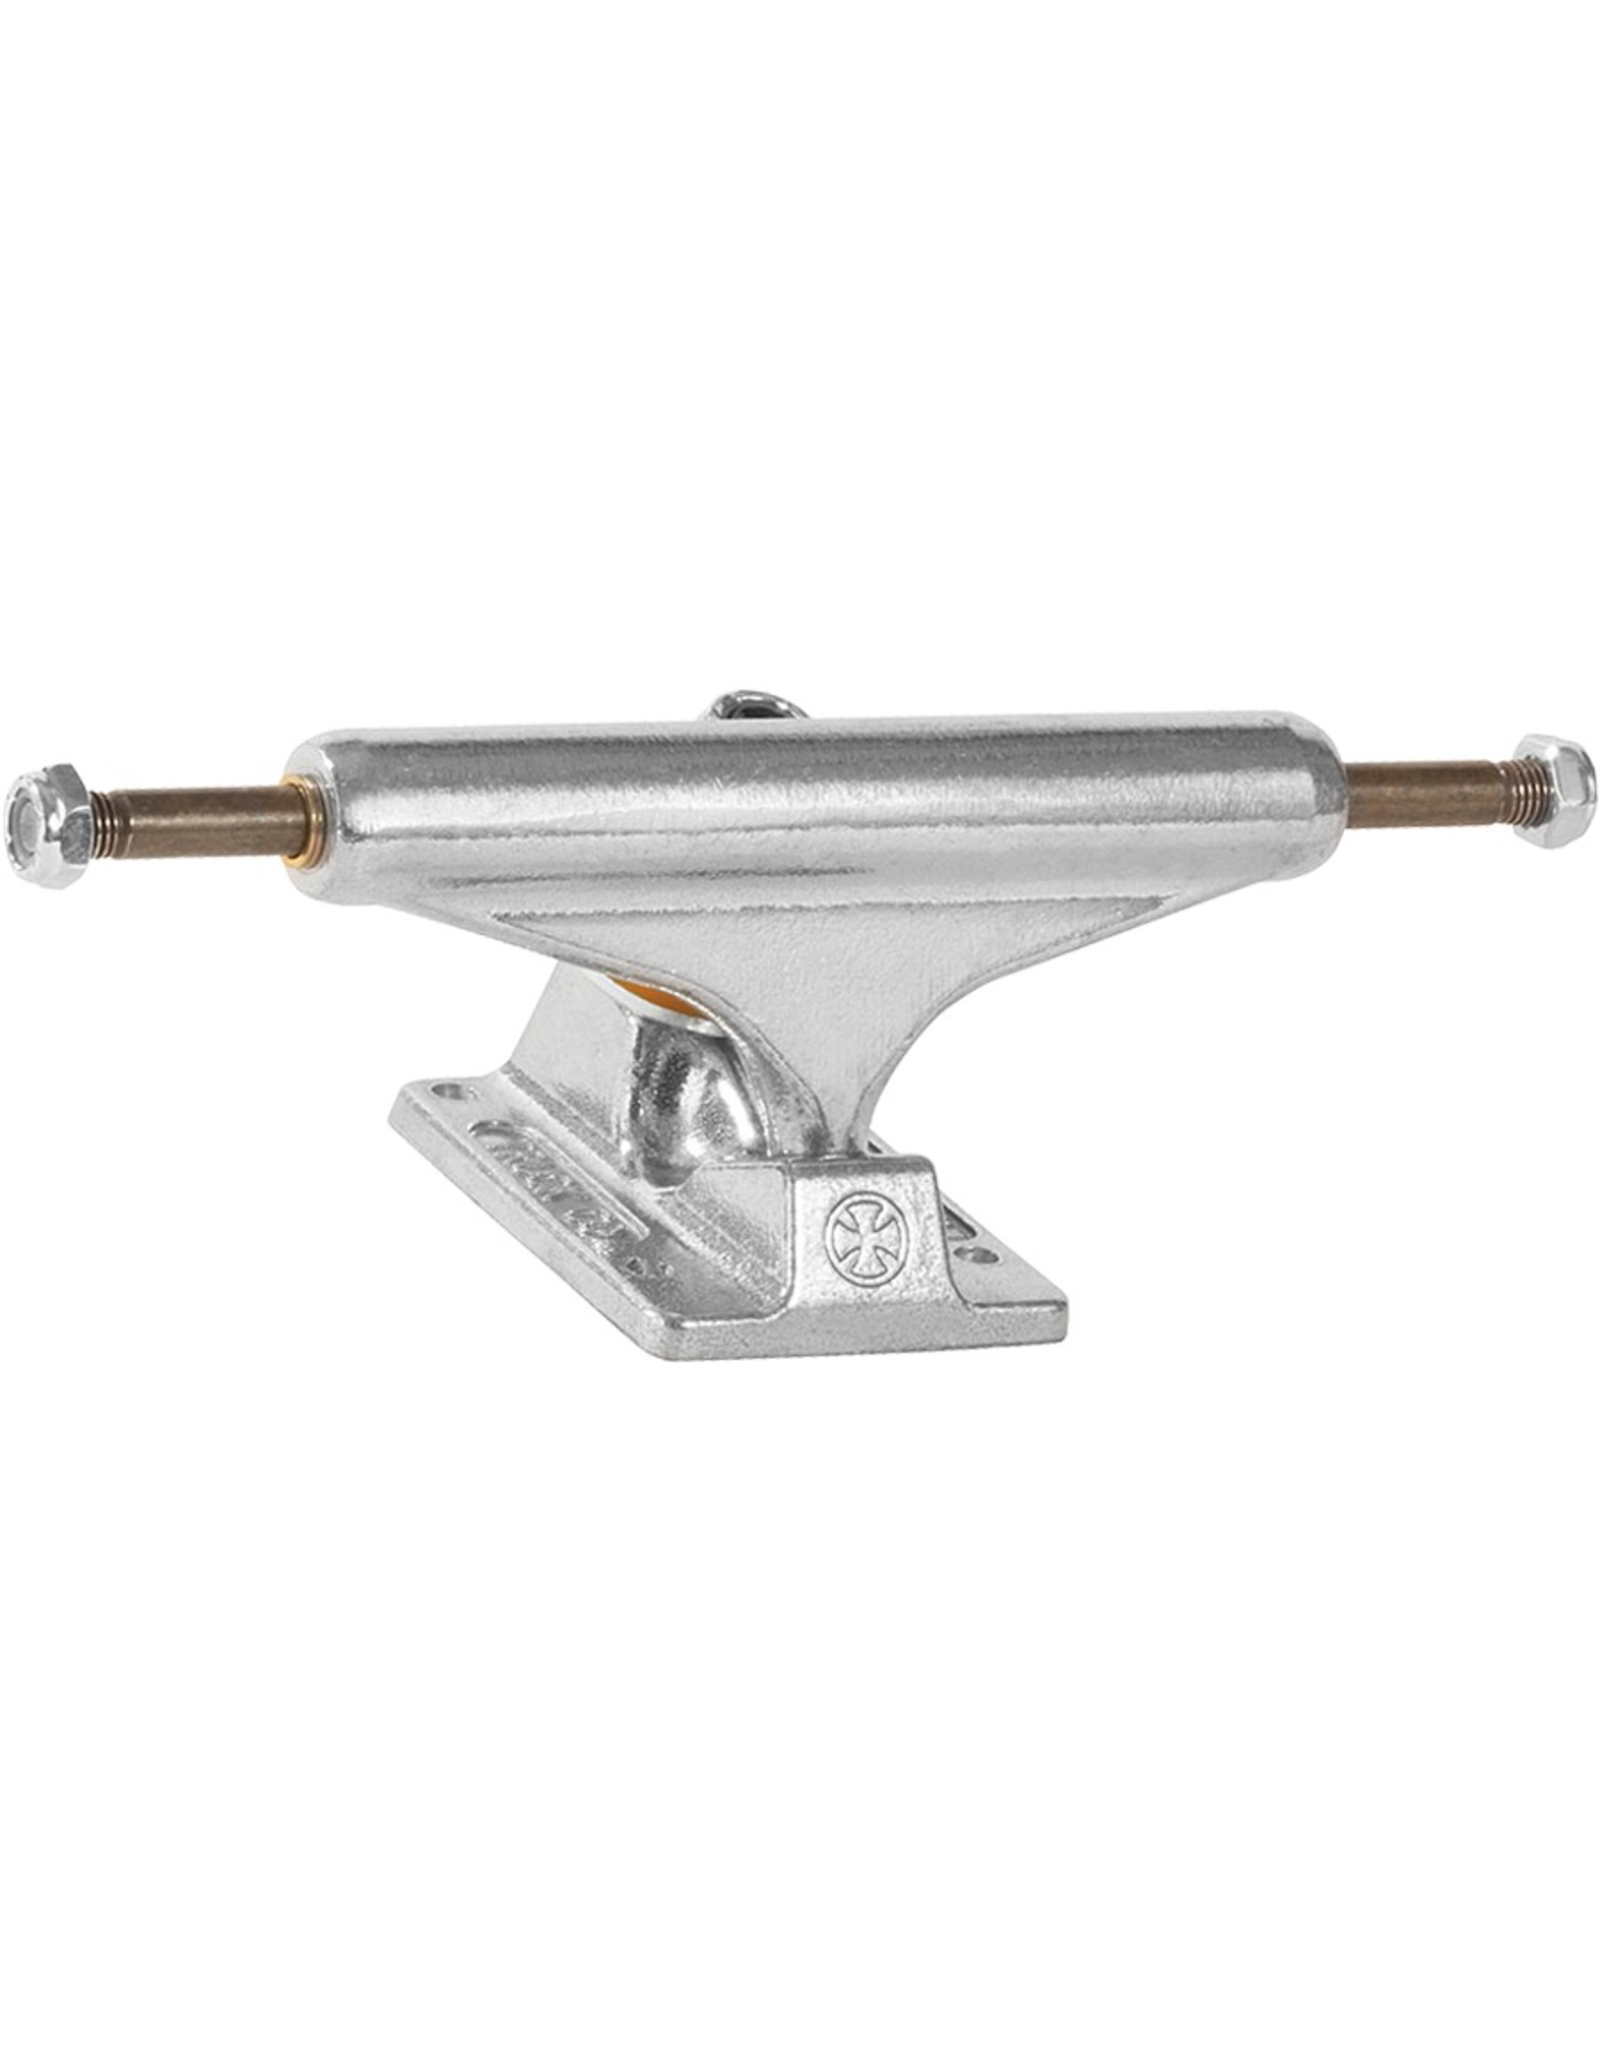 "INDEPENDENT Independent Stage 11 - 144mm Standard Polished Skateboard Trucks - 5.67"" Hanger 8.25"" Axle (Set of 2)"